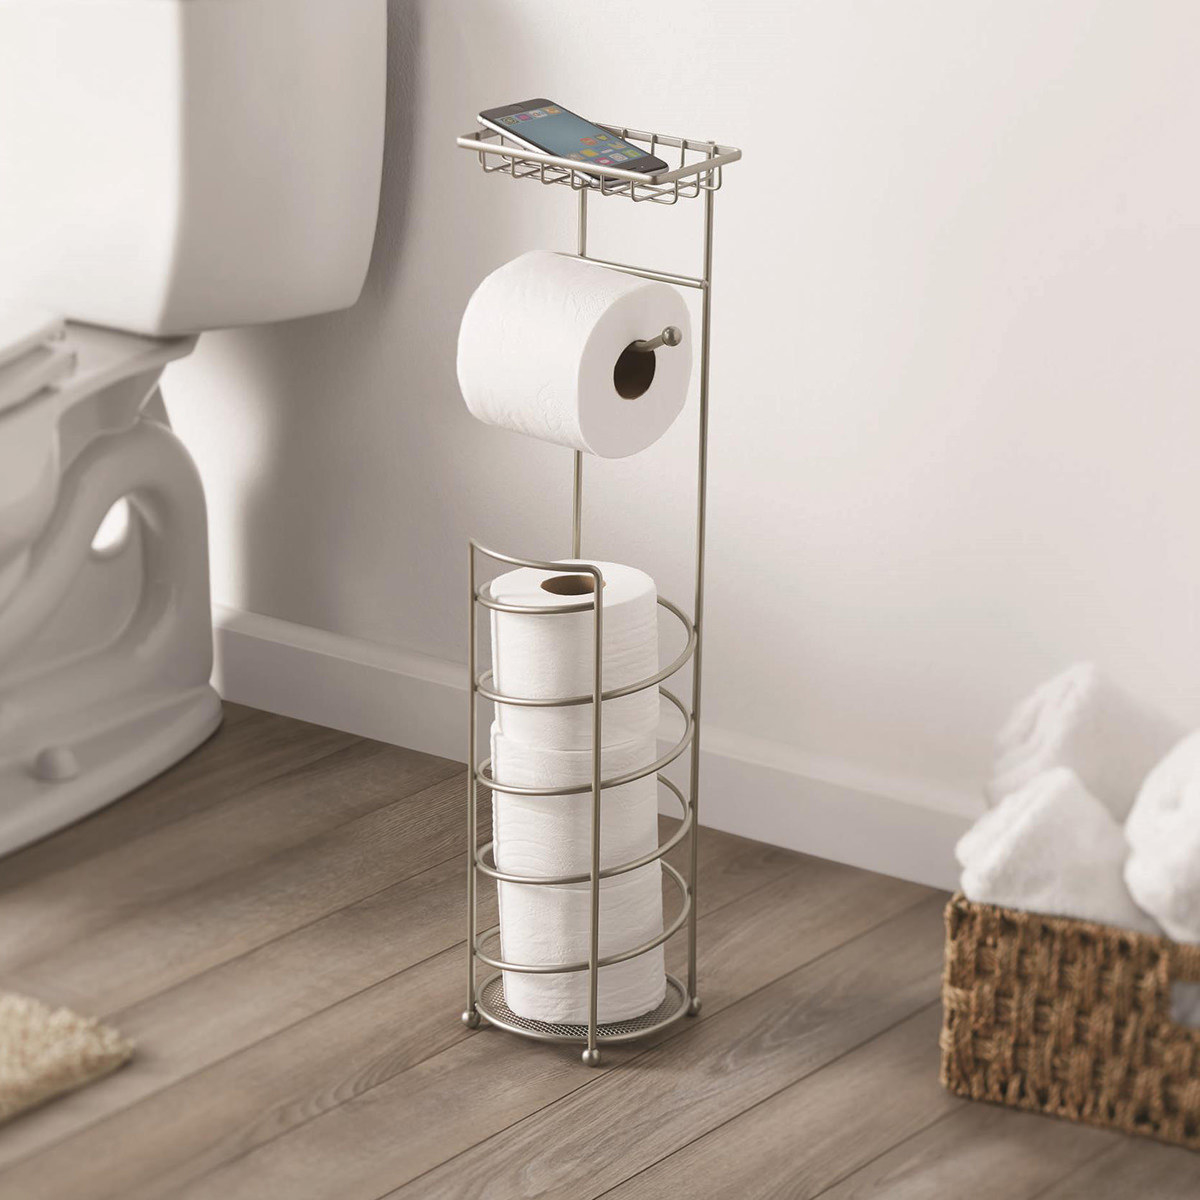 The metal toilet paper holder with a bottom section for rolls, a rod for the roll in use, and phone shelf on top